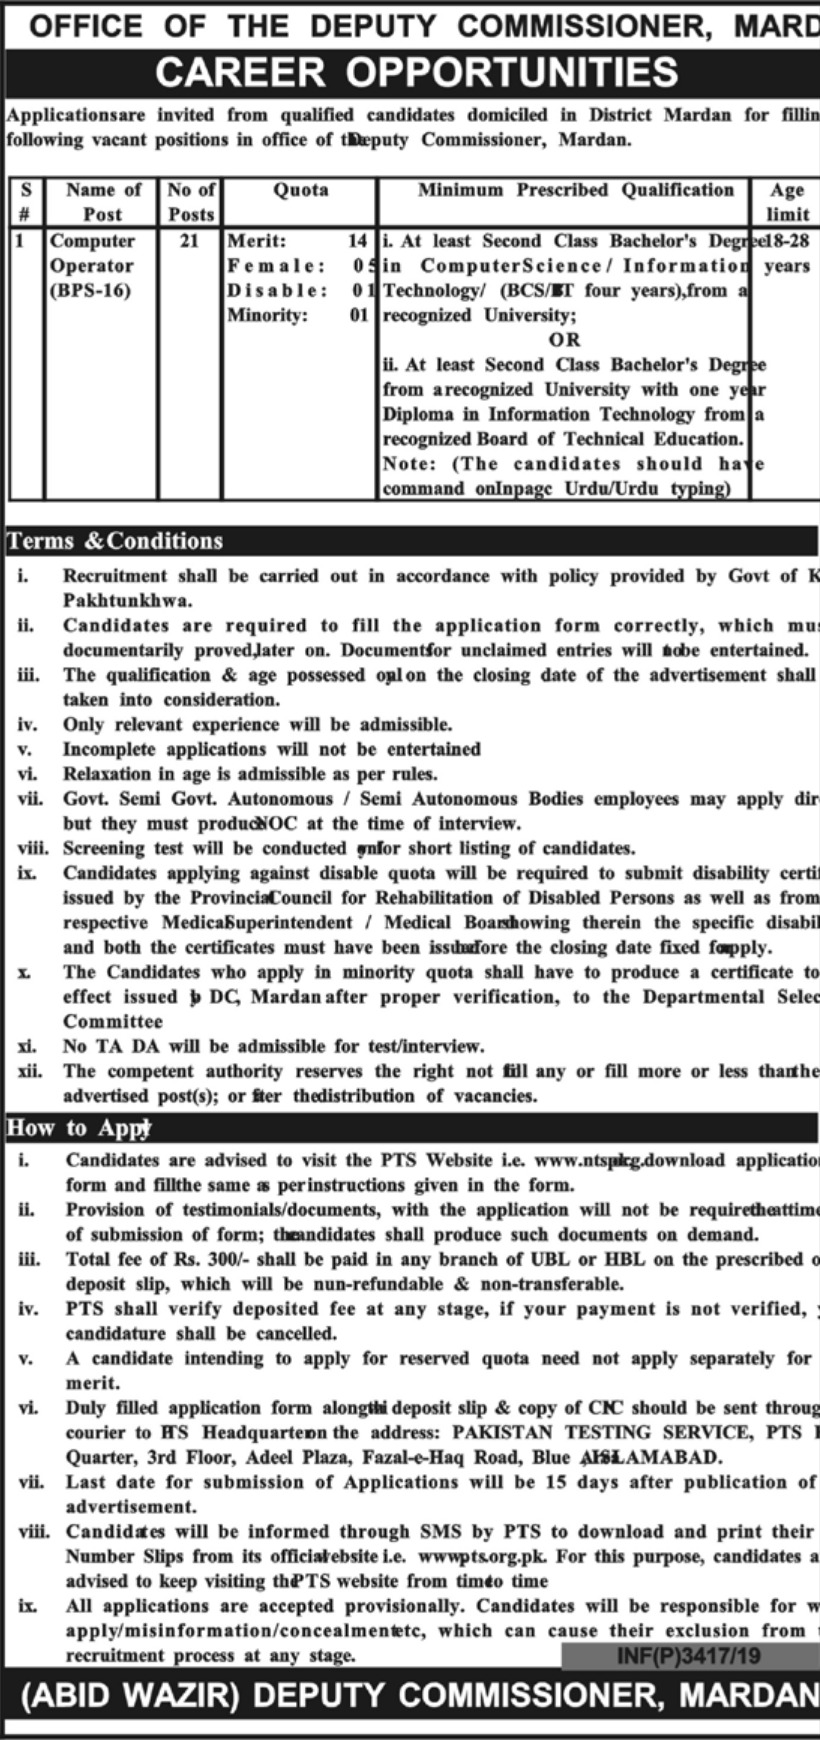 Deputy Commissioner Office Mardan Jobs 2019 Download PTS Application Form